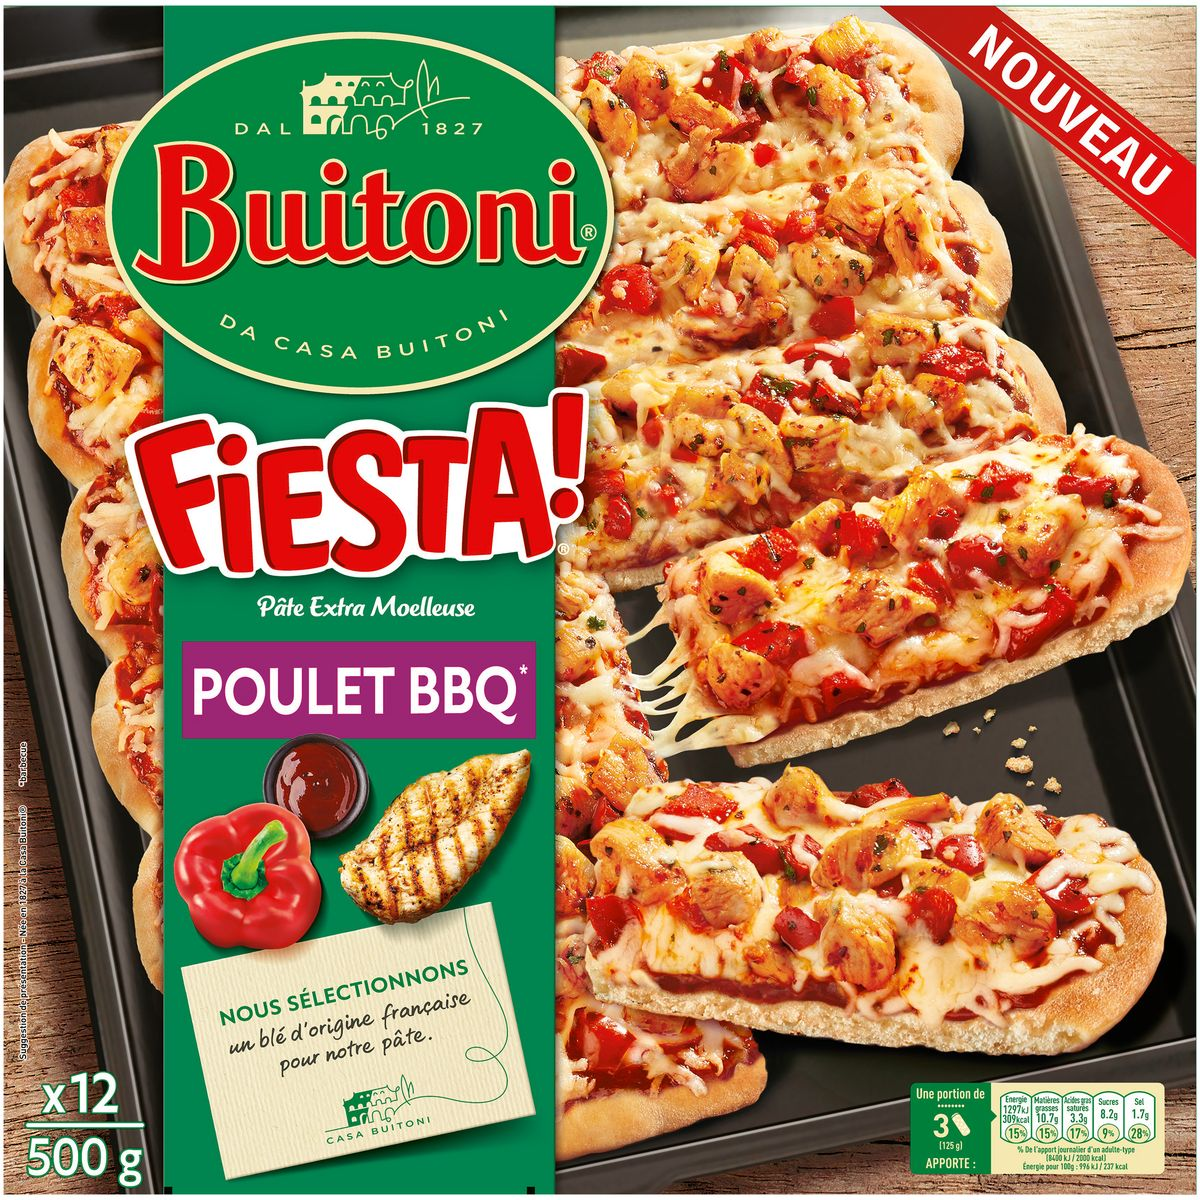 Buitoni Fiesta Pizza Poulet Barbecue Et Sa Pate Extra Moelleuse